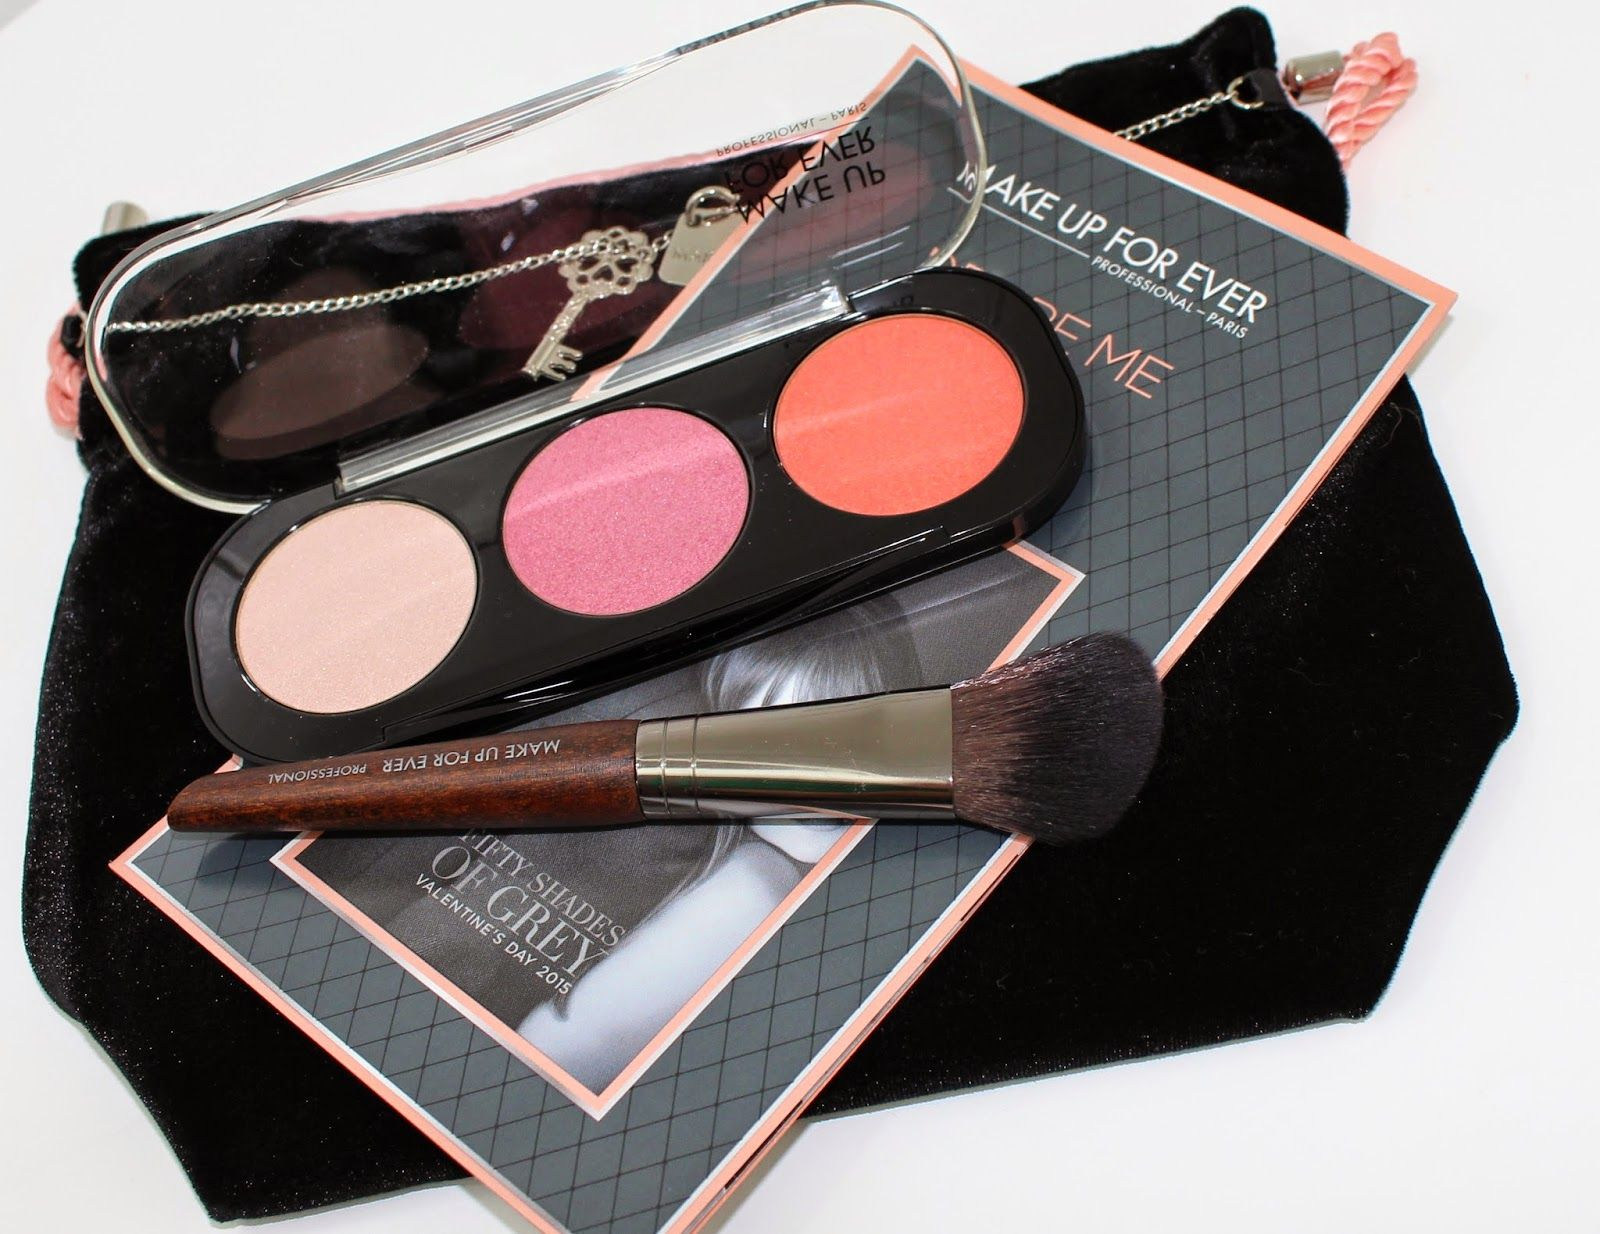 My Beauty Box Make Up For Ever Desire Me Cheeky Blush